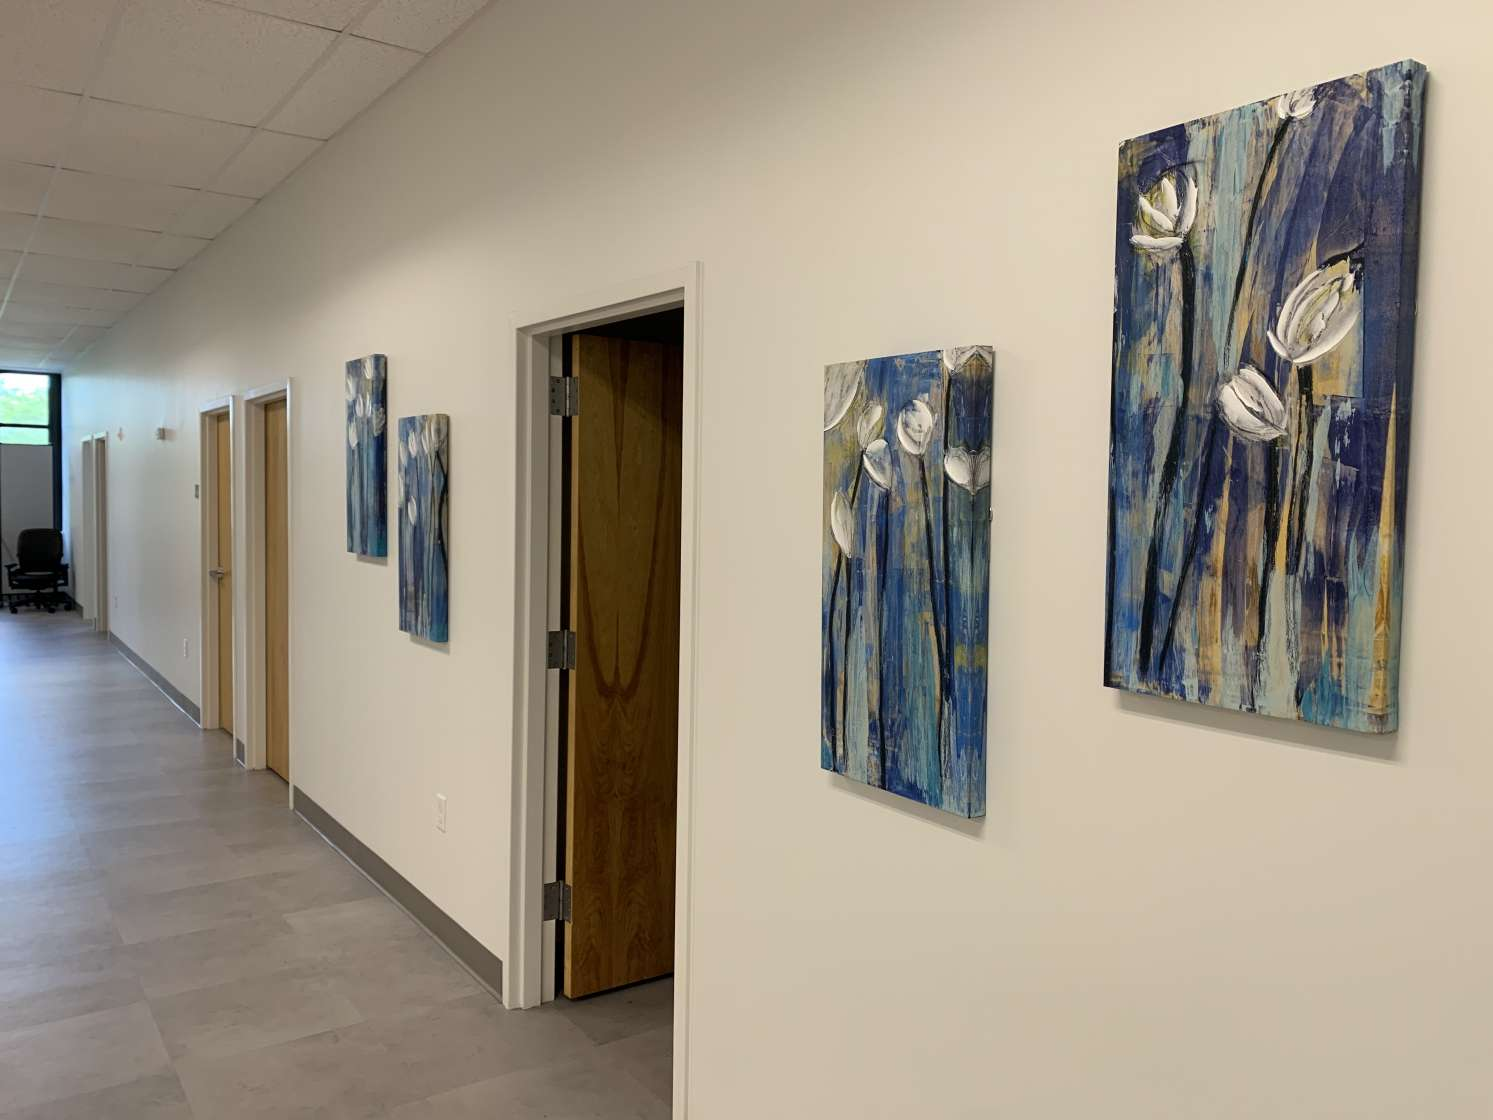 Image of artwork that was purchased using the gift donated by UF DPT alum Dr. Arlyn Thobaben